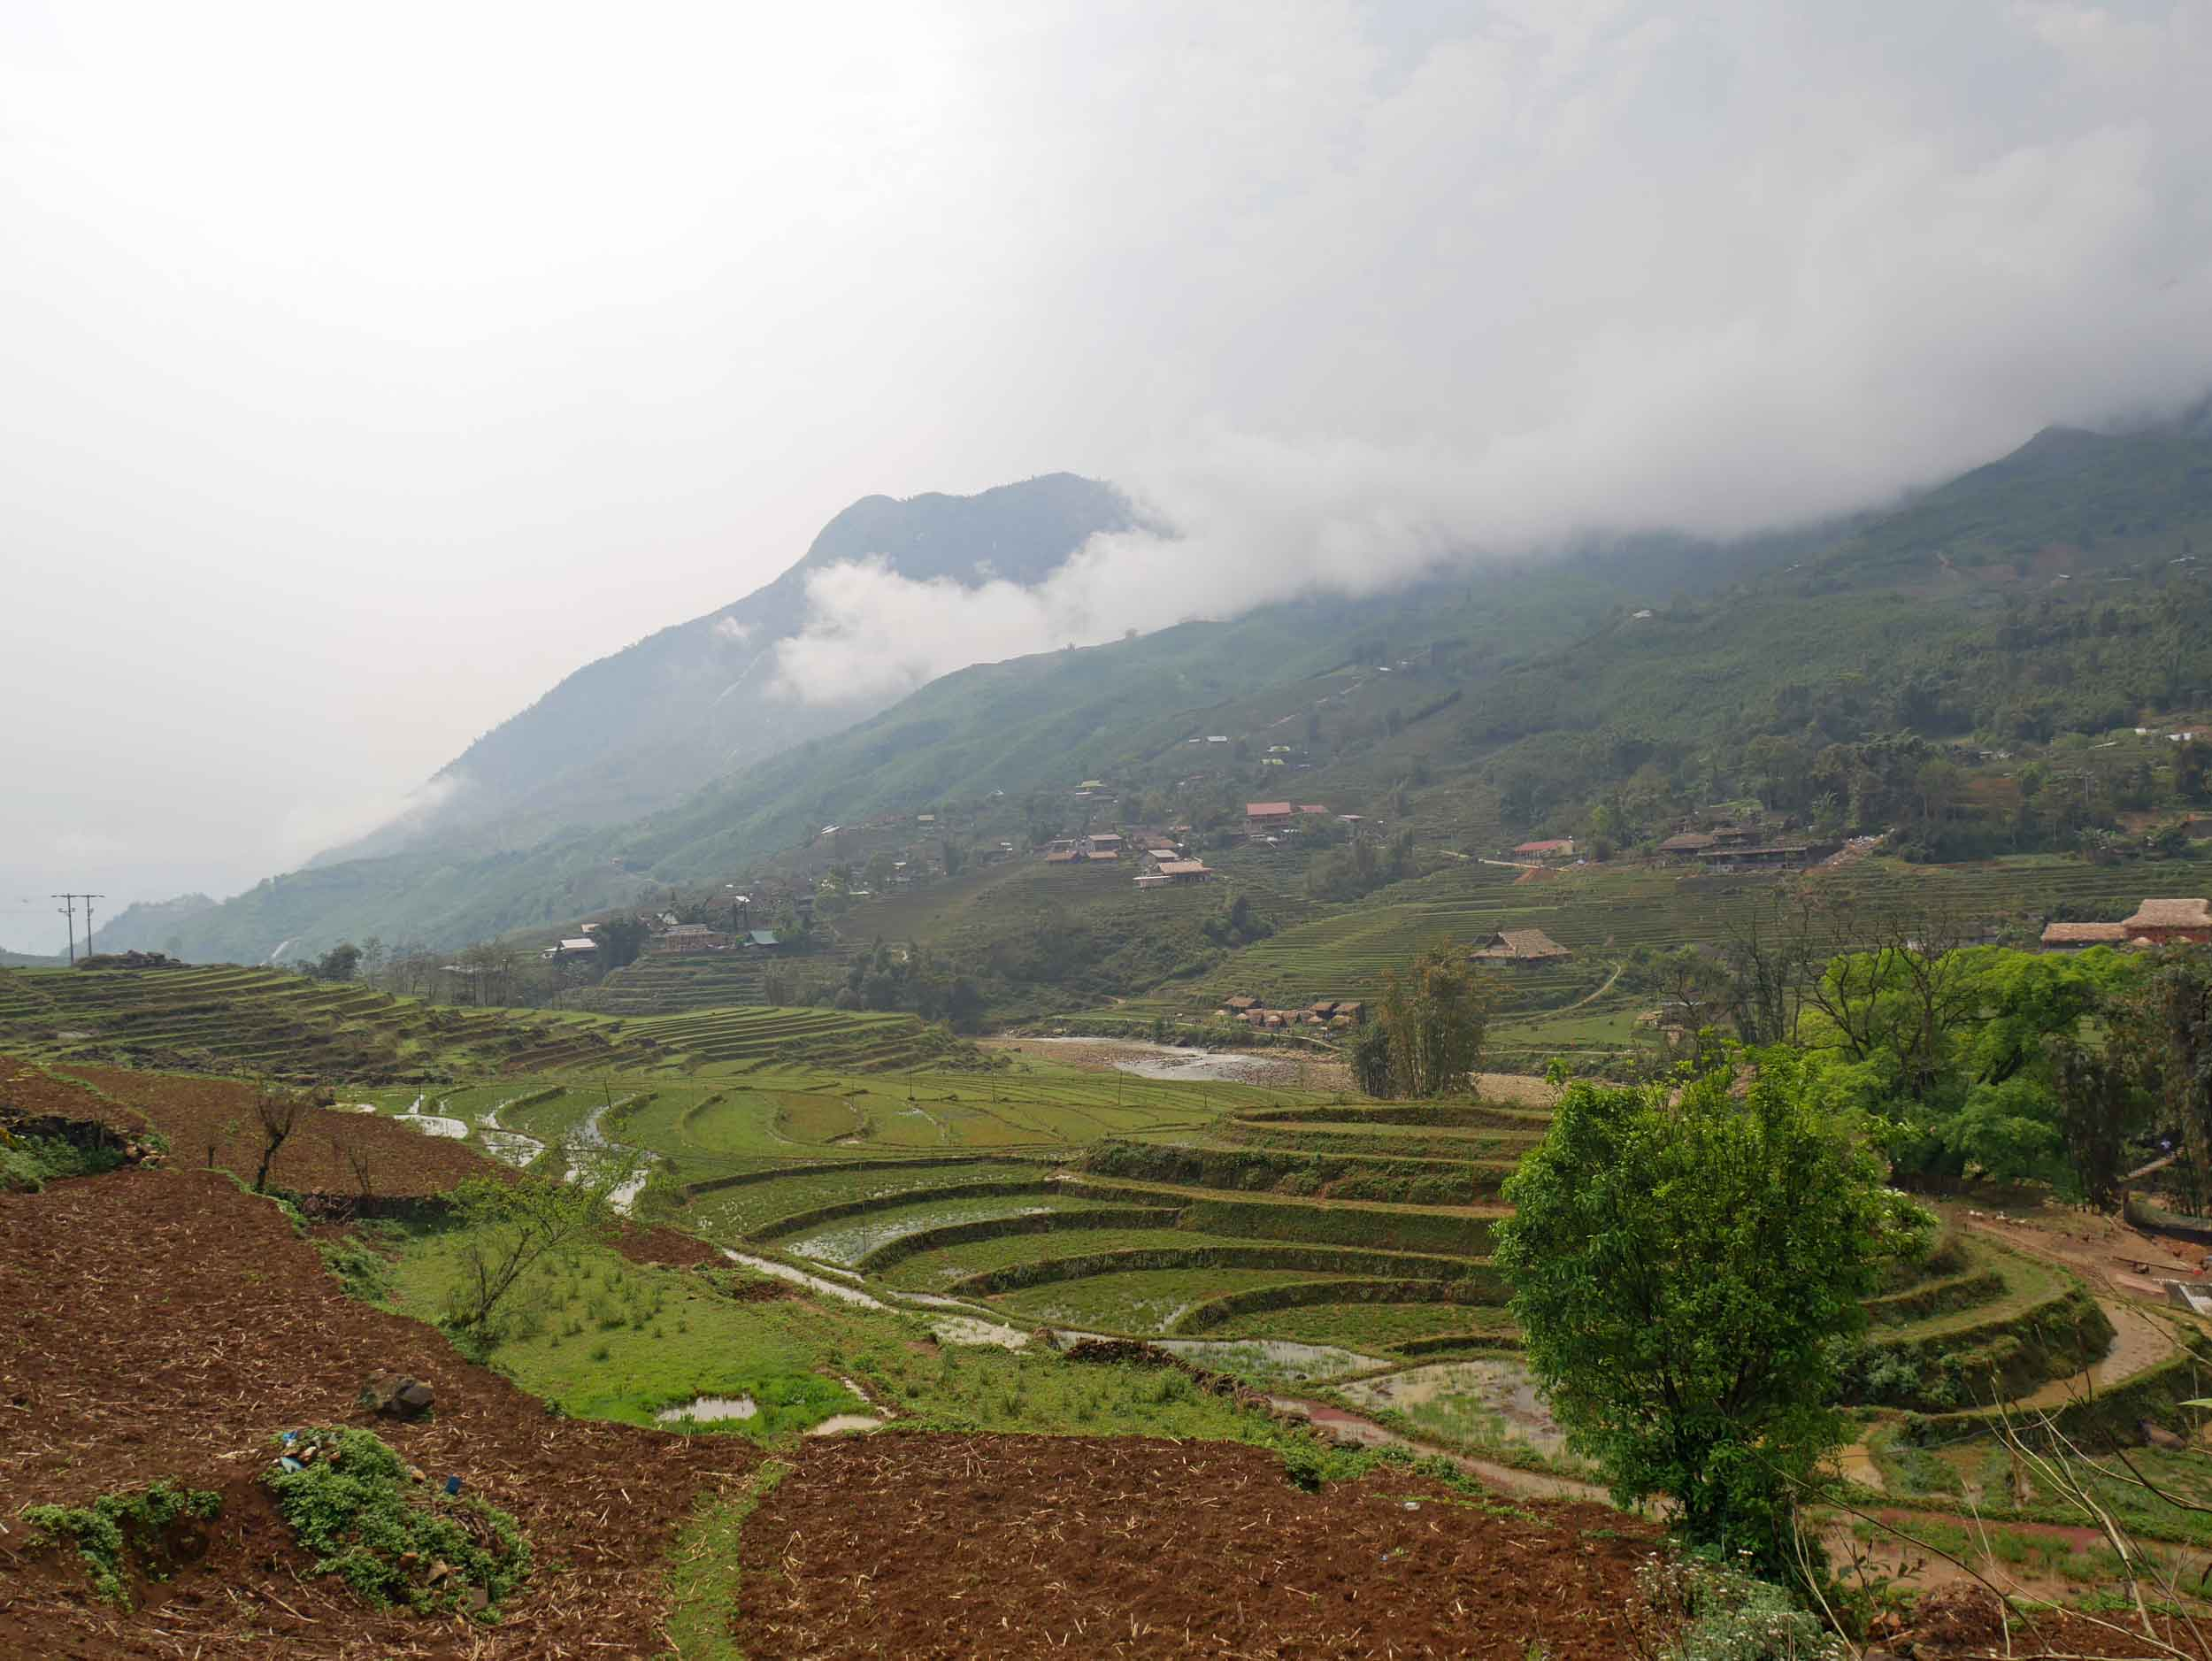 Gazing out across the fields of fallow rice terraces, you can almost feel the centuries of human effort and energy in this place (Mar 25).